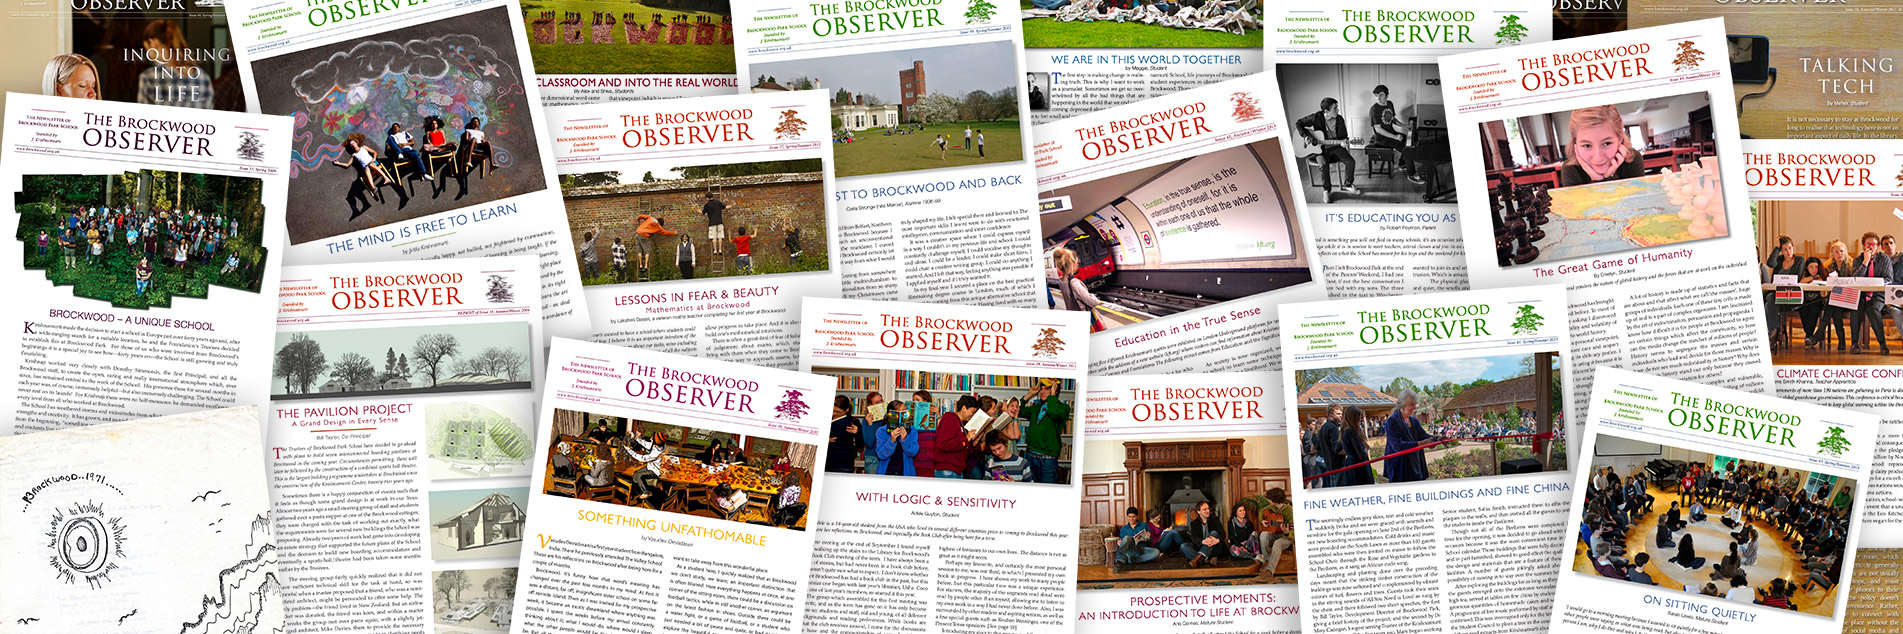 Composite image of the Brockwood Observer, Brockwood Park School's magazine